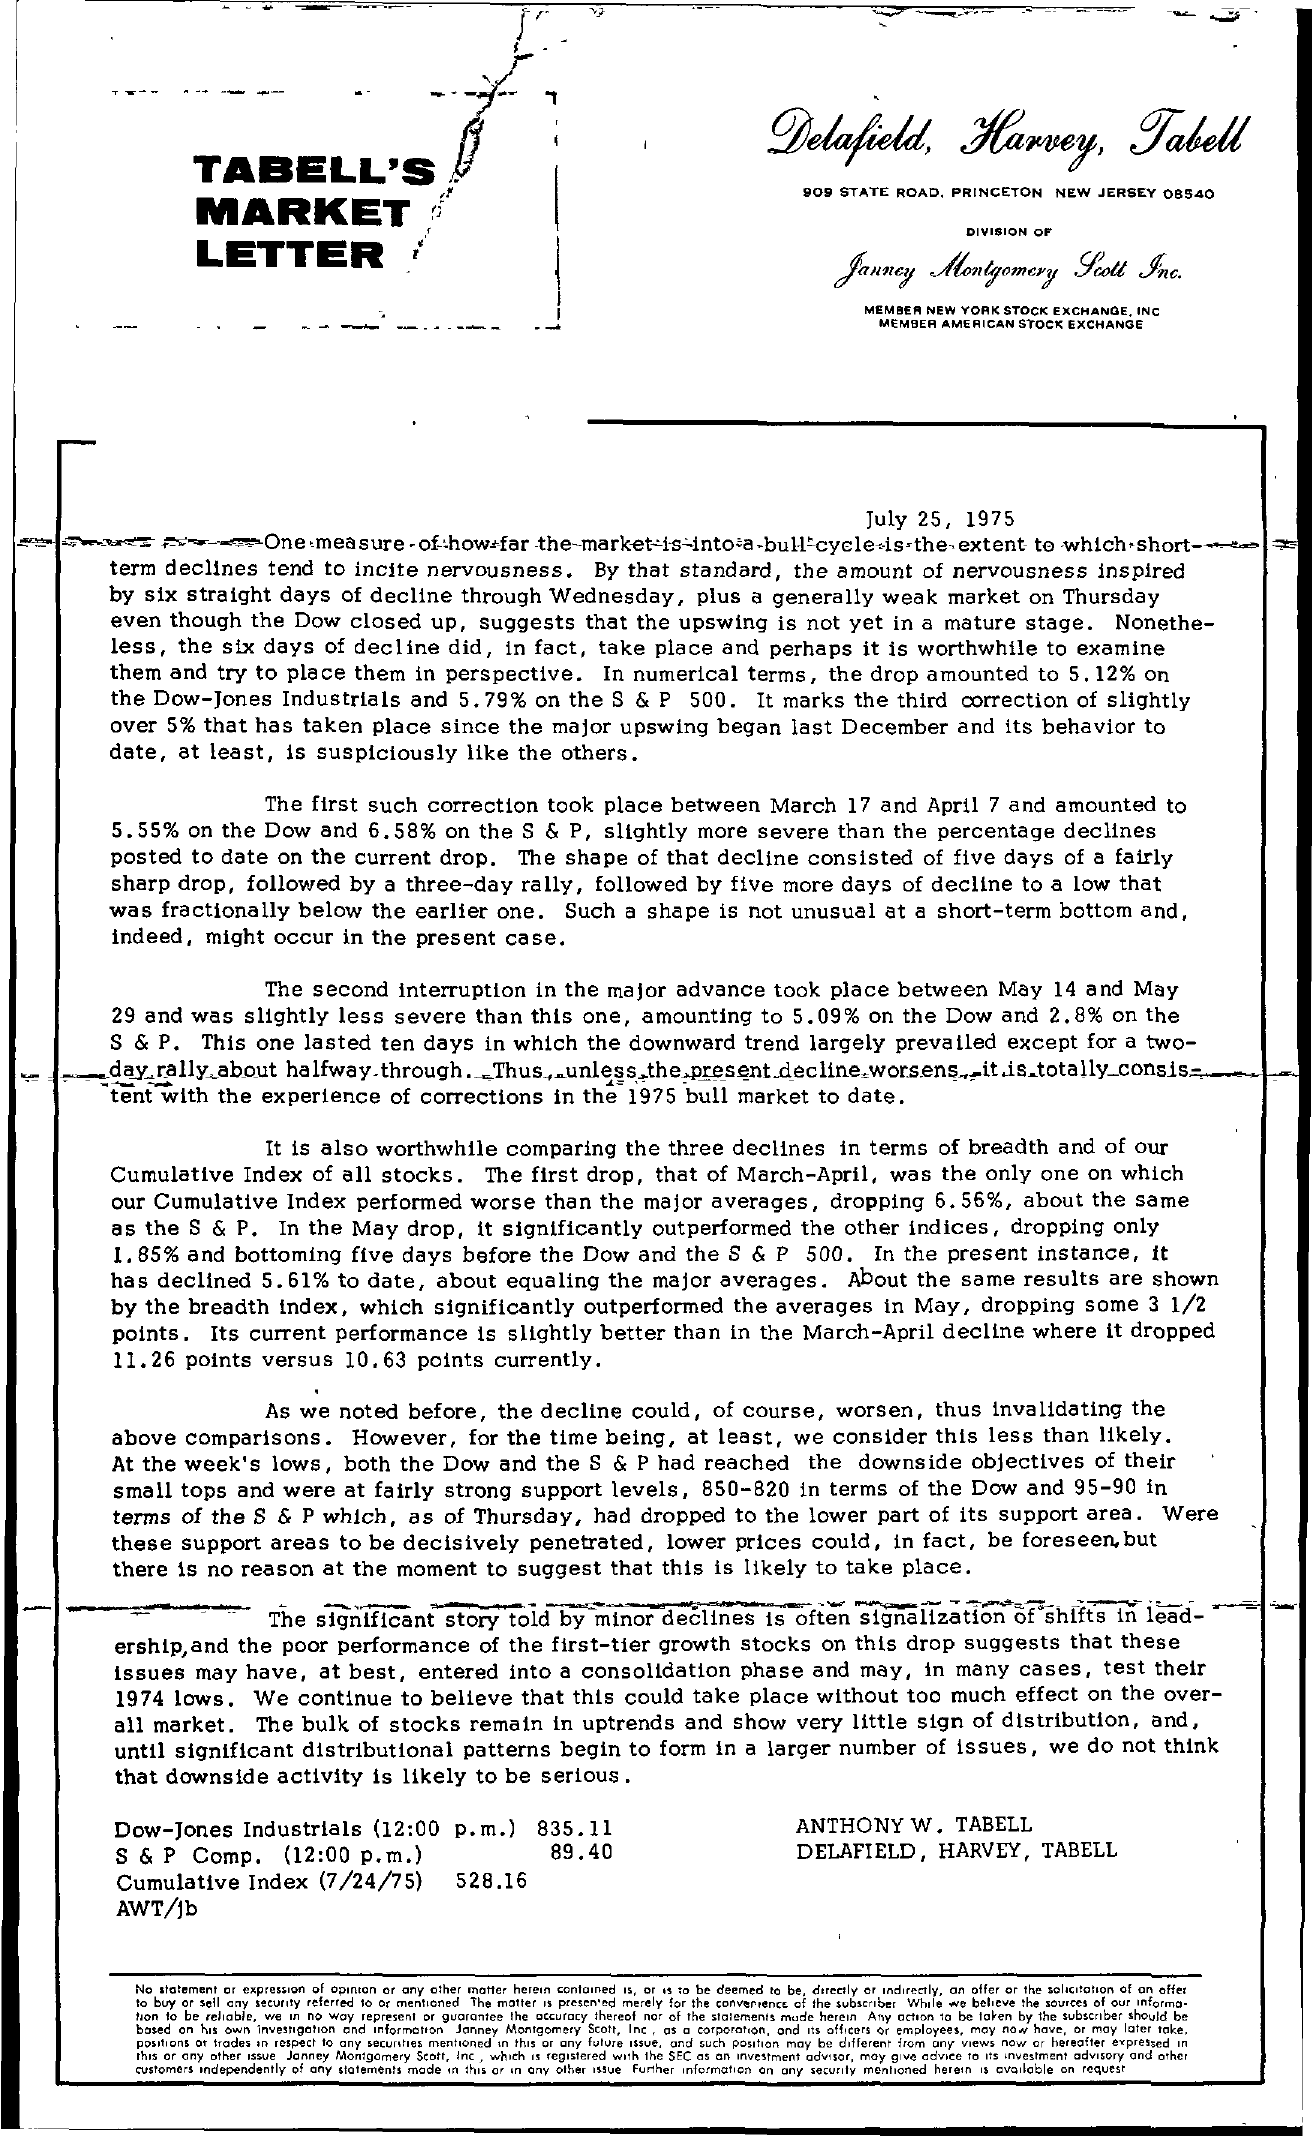 Tabell's Market Letter - July 25, 1975